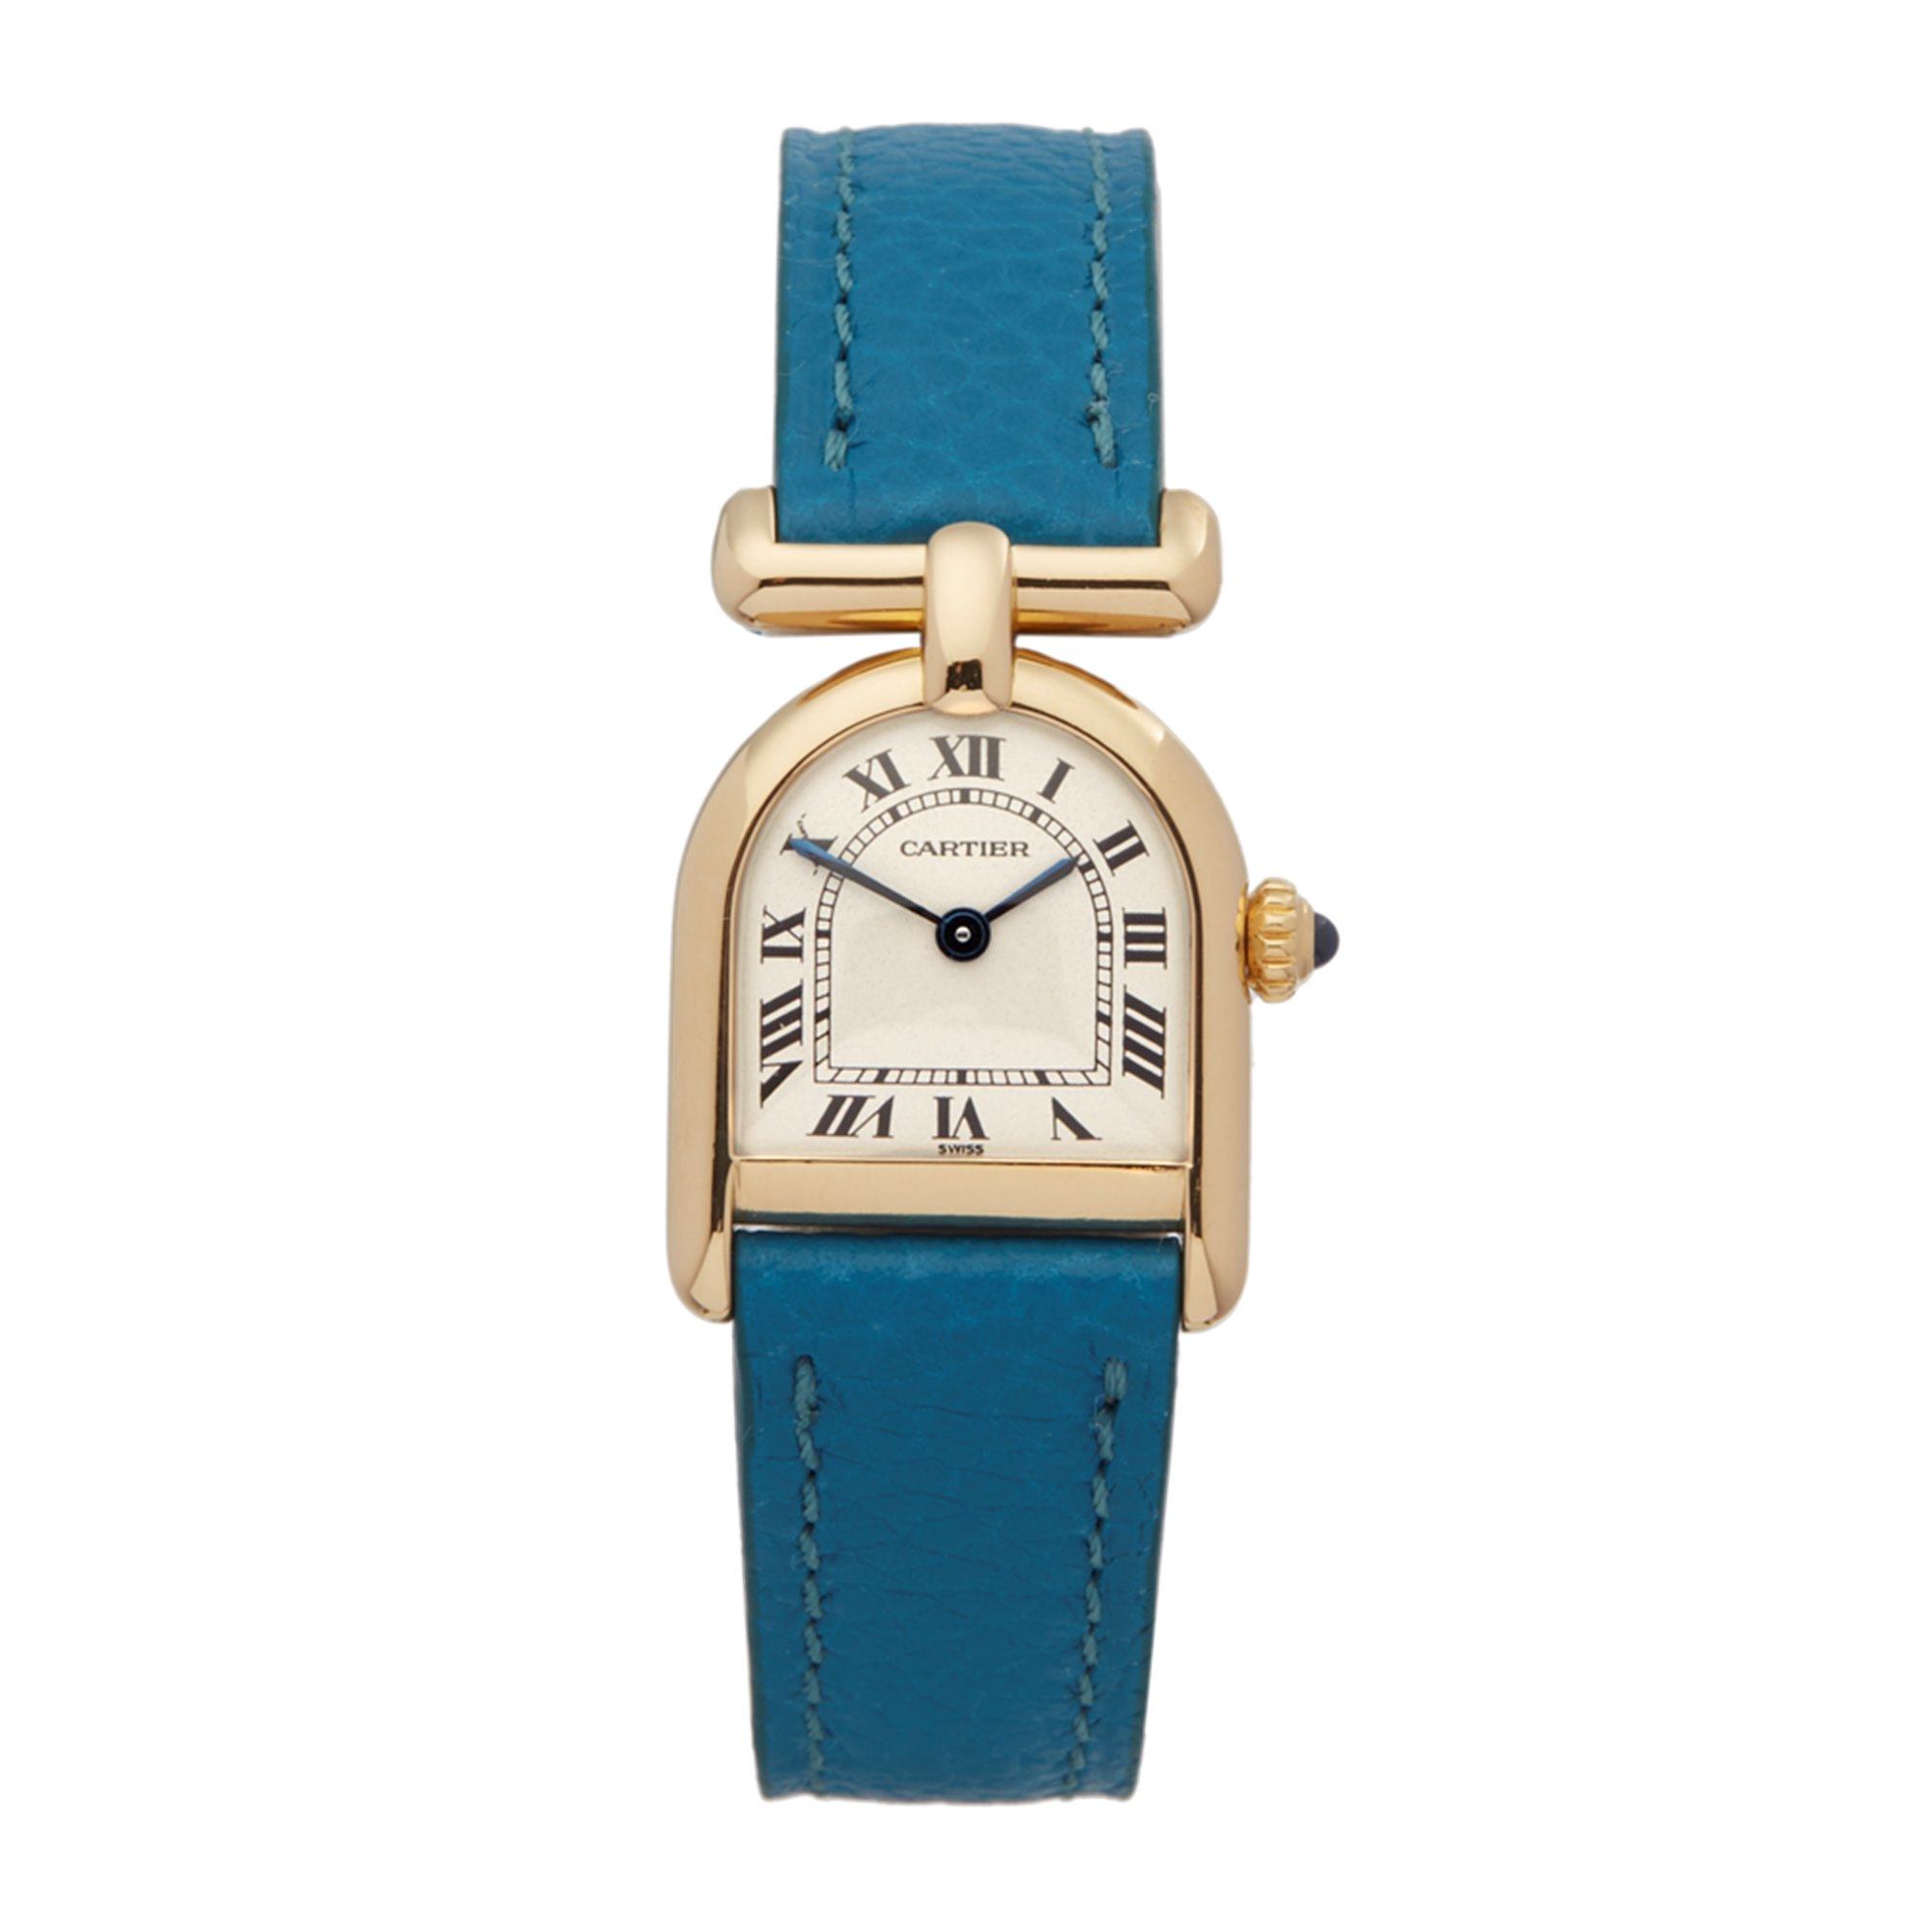 Cartier Romane 18K Yellow Gold 84723374 or 0108